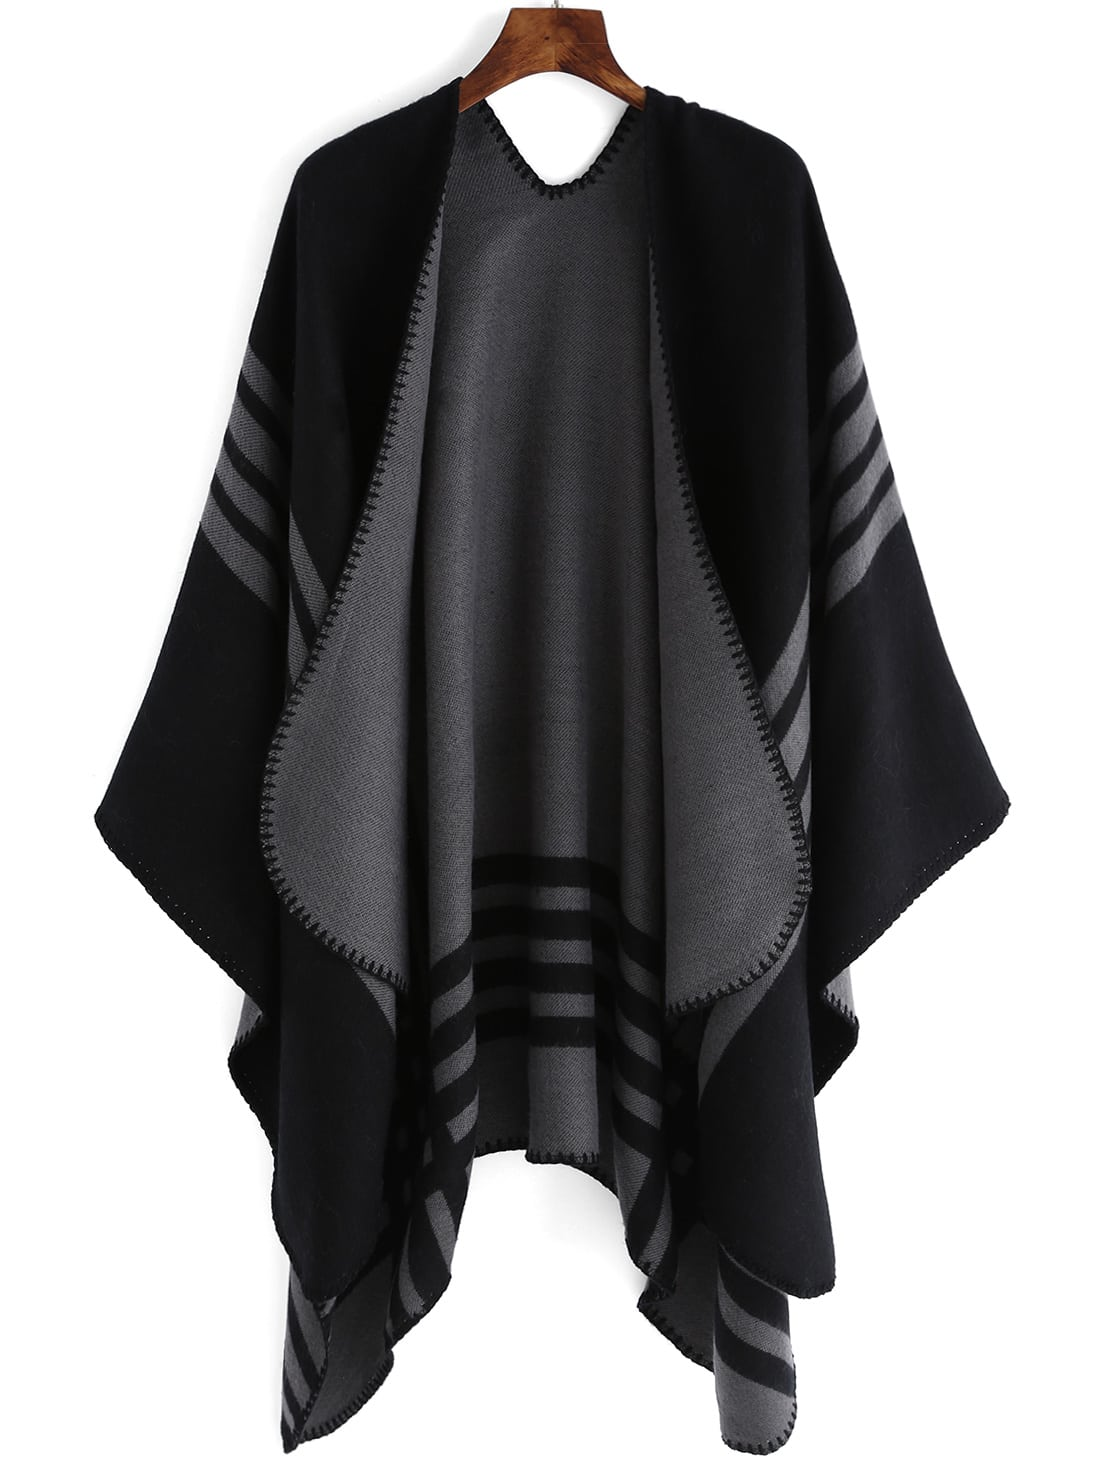 Chelsea Poncho (black) Women's Sweater $ 82 From Zappos Price last checked 13 hours ago. Product prices and availability are accurate as of the date/time indicated and are subject to change. Any price and availability information displayed on partners' sites at the time of purchase will apply to Price: $